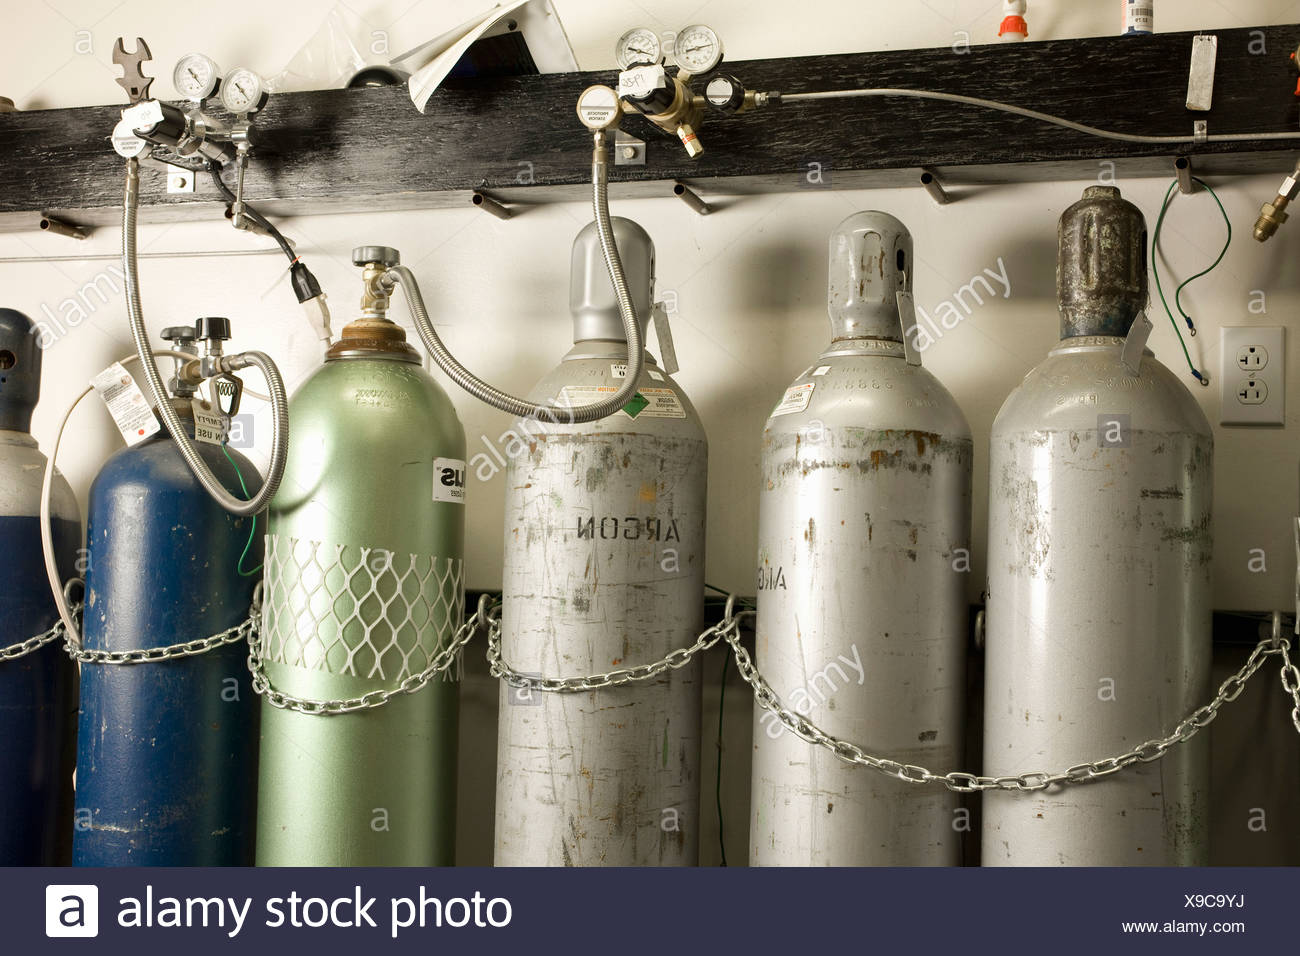 Compressed gases for atomic absorption aAlysis - Stock Image